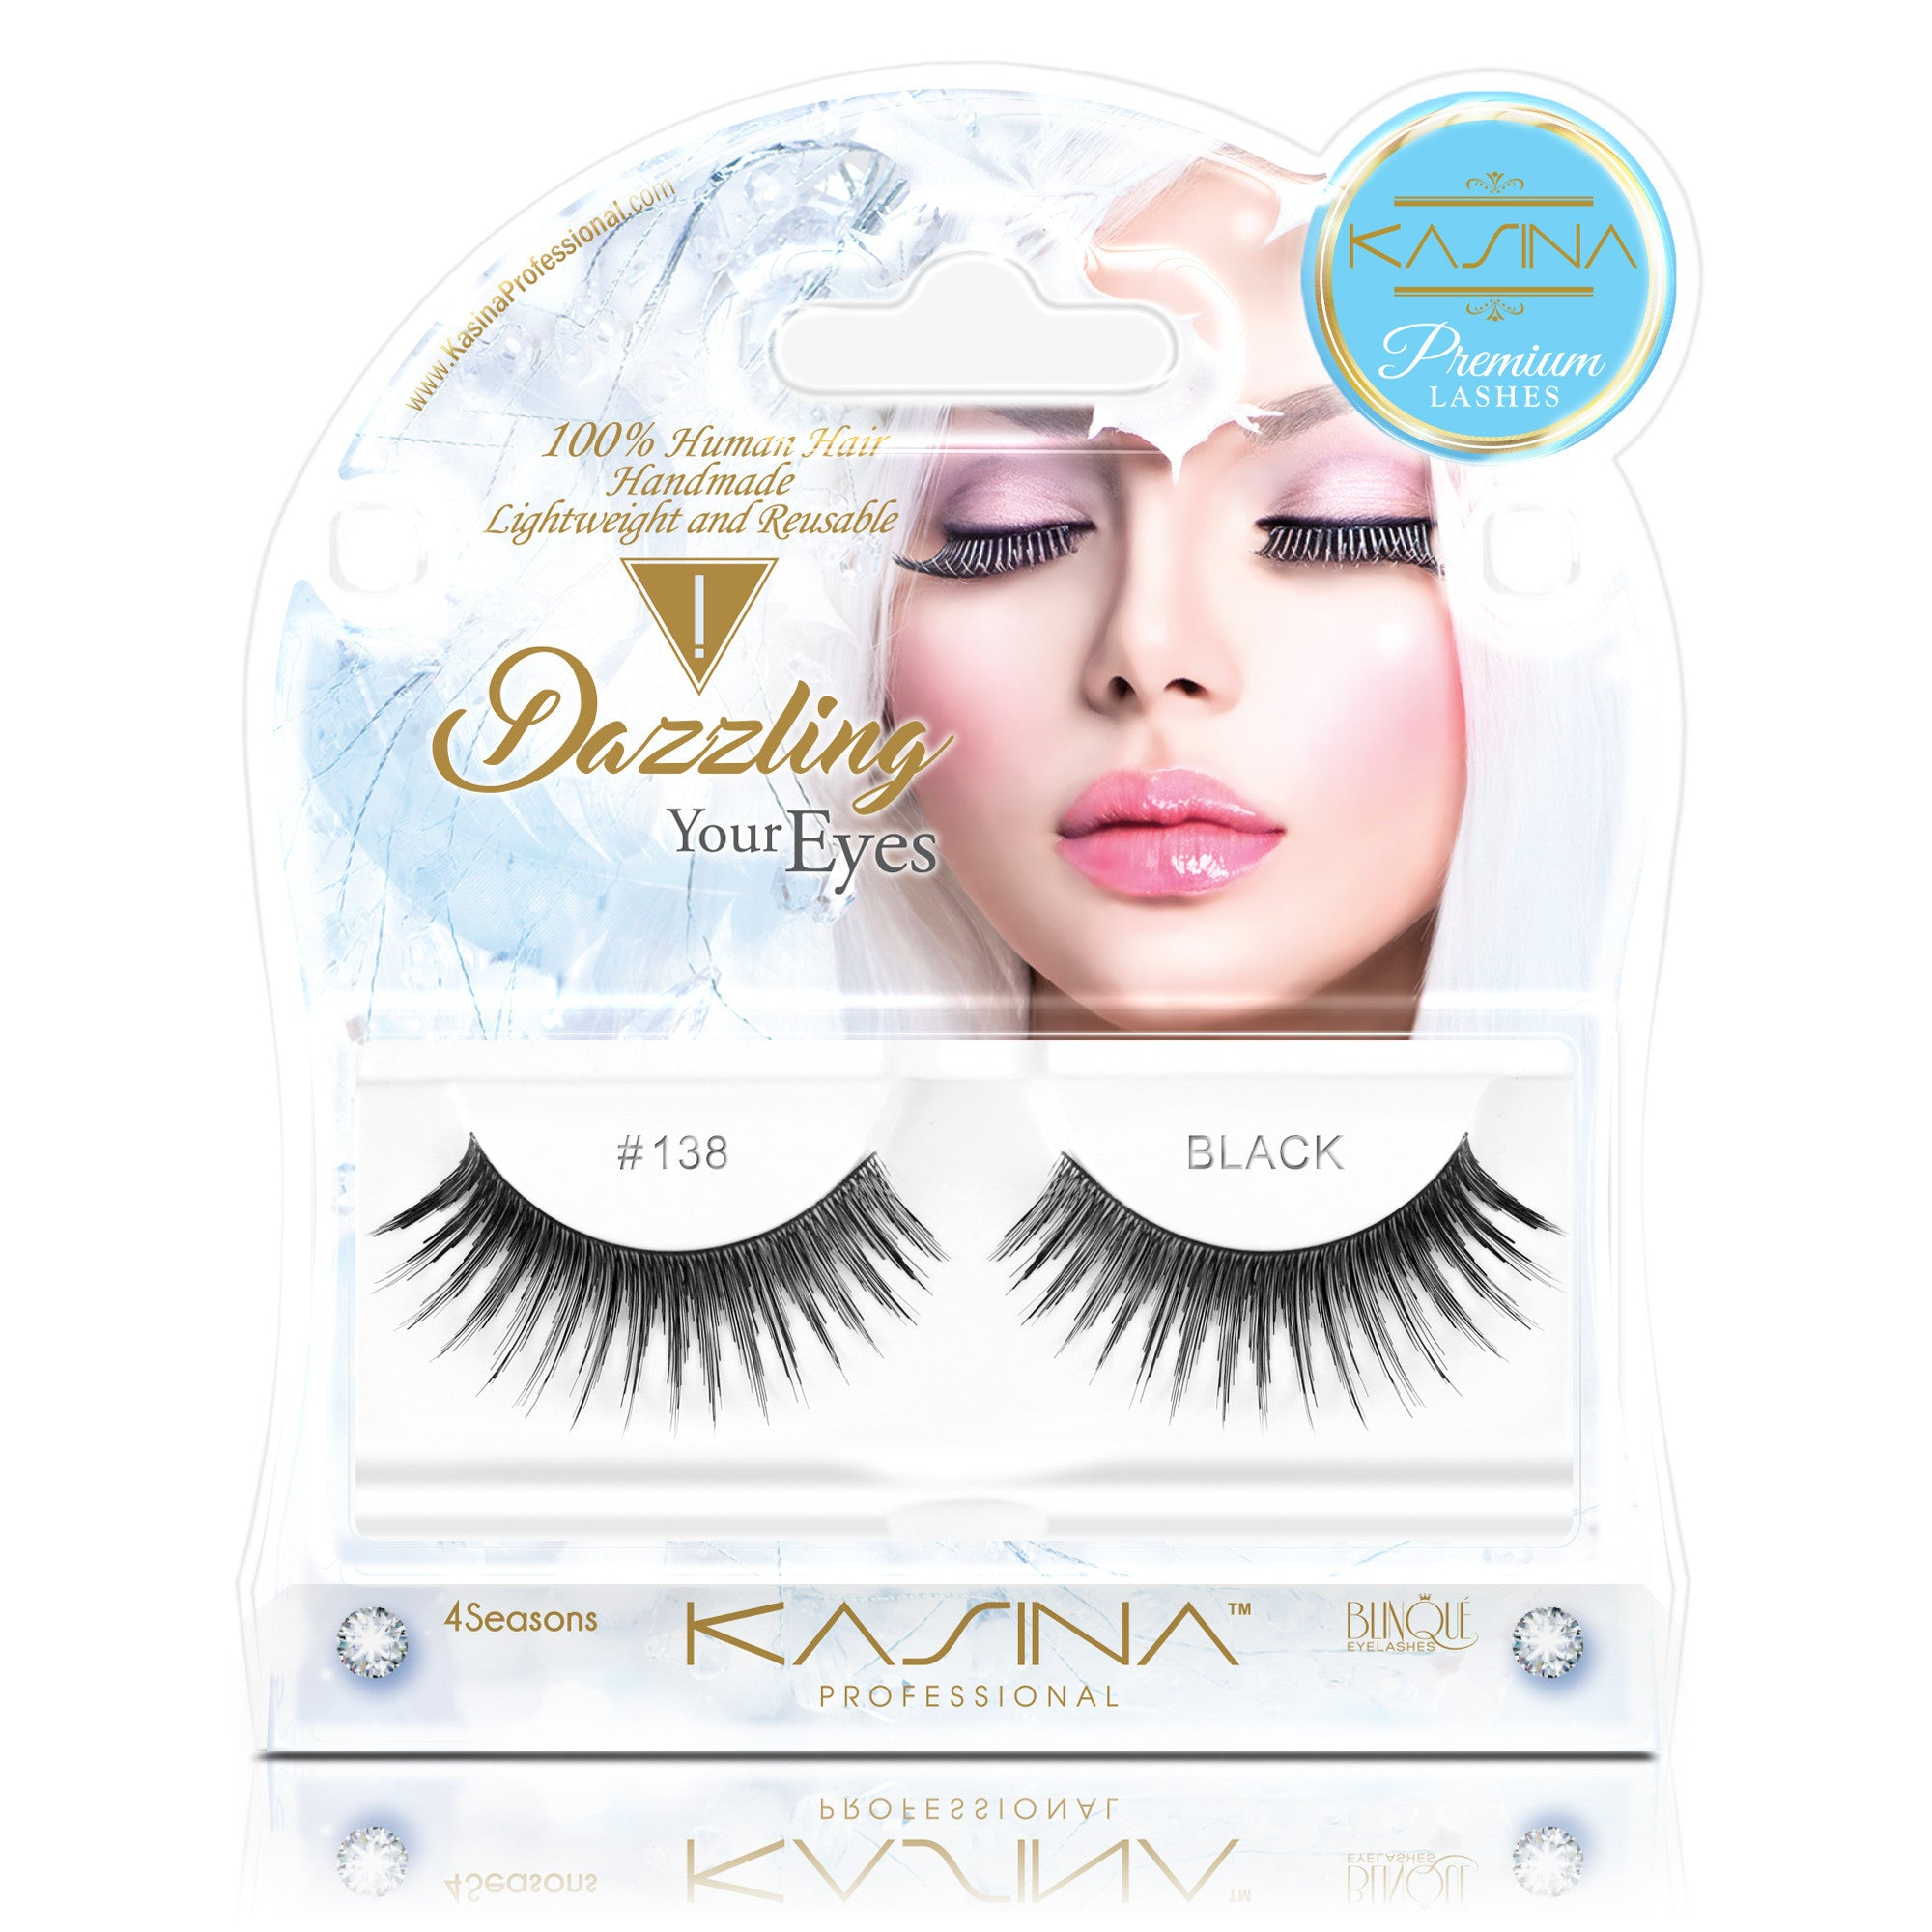 False Lashes - Premium Dazzling #138, WINTER - Recommended by Professional Makeup Artists.